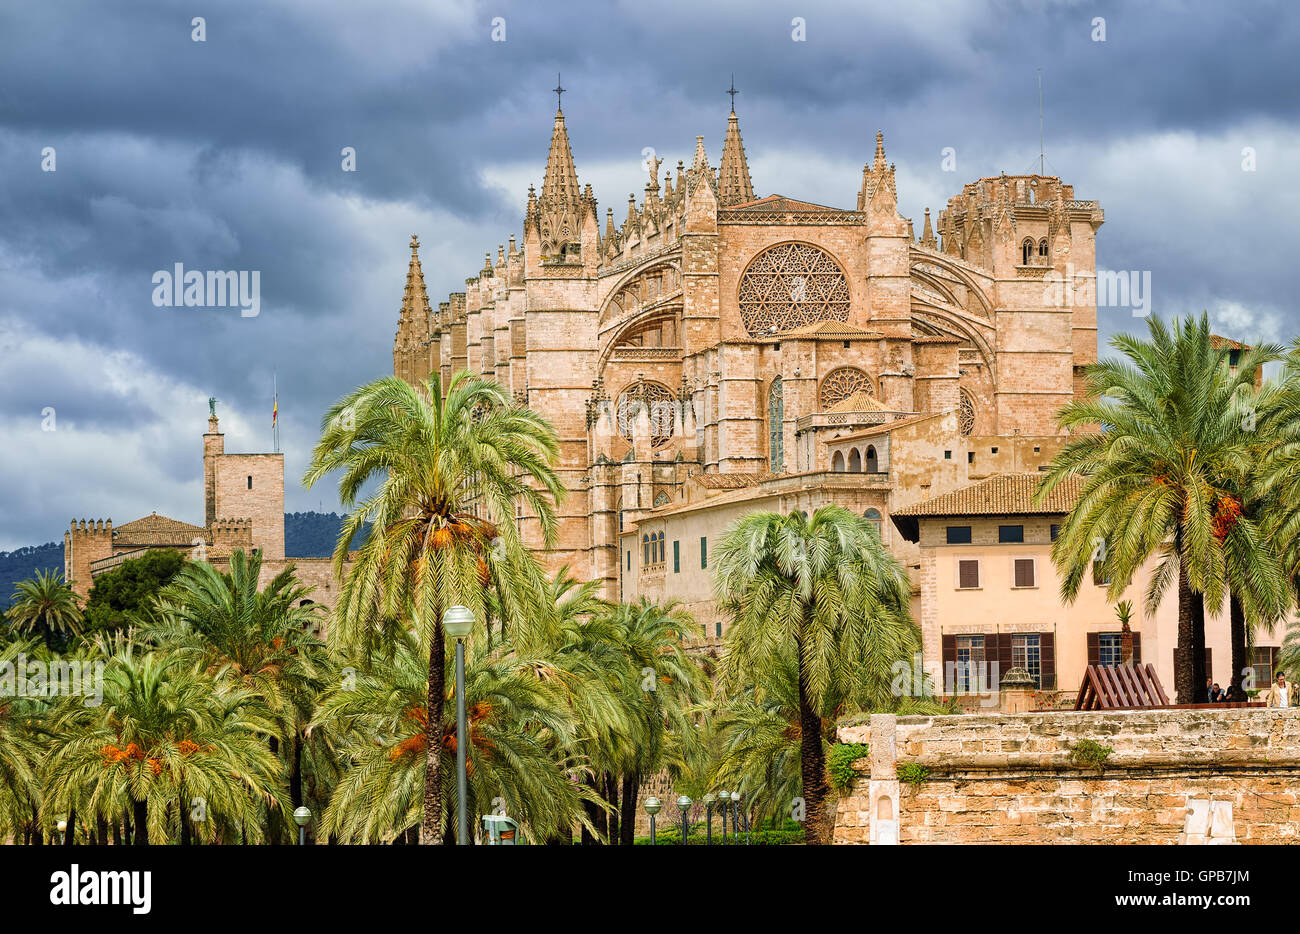 La Seu, medieval gothic cathedral of Palma de Mallorca, in the palm tree garden, Spain - Stock Image